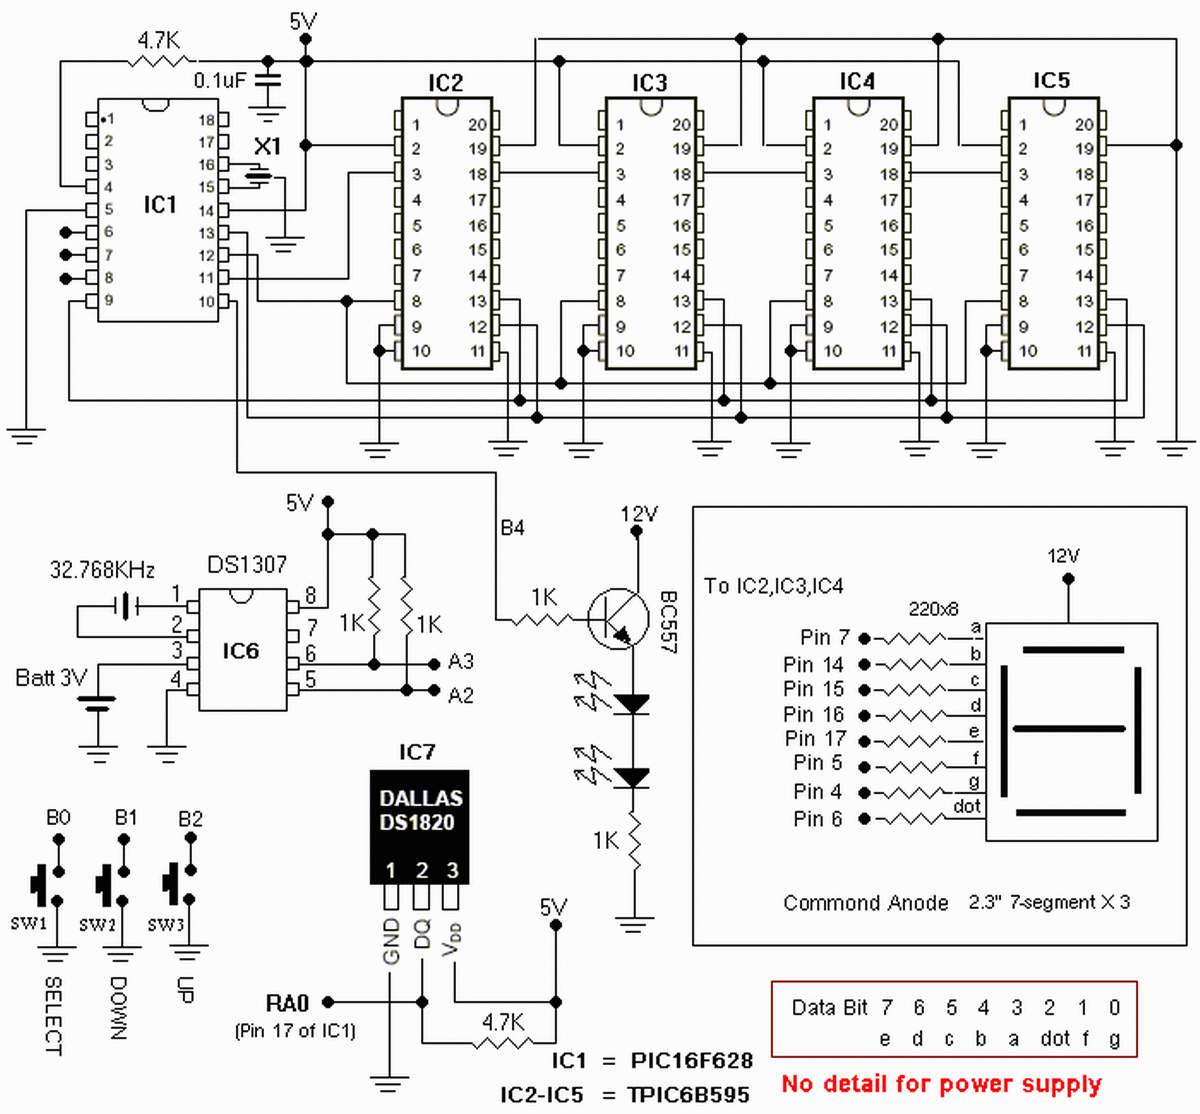 7 segment clock circuit diagram  u2013 readingrat net